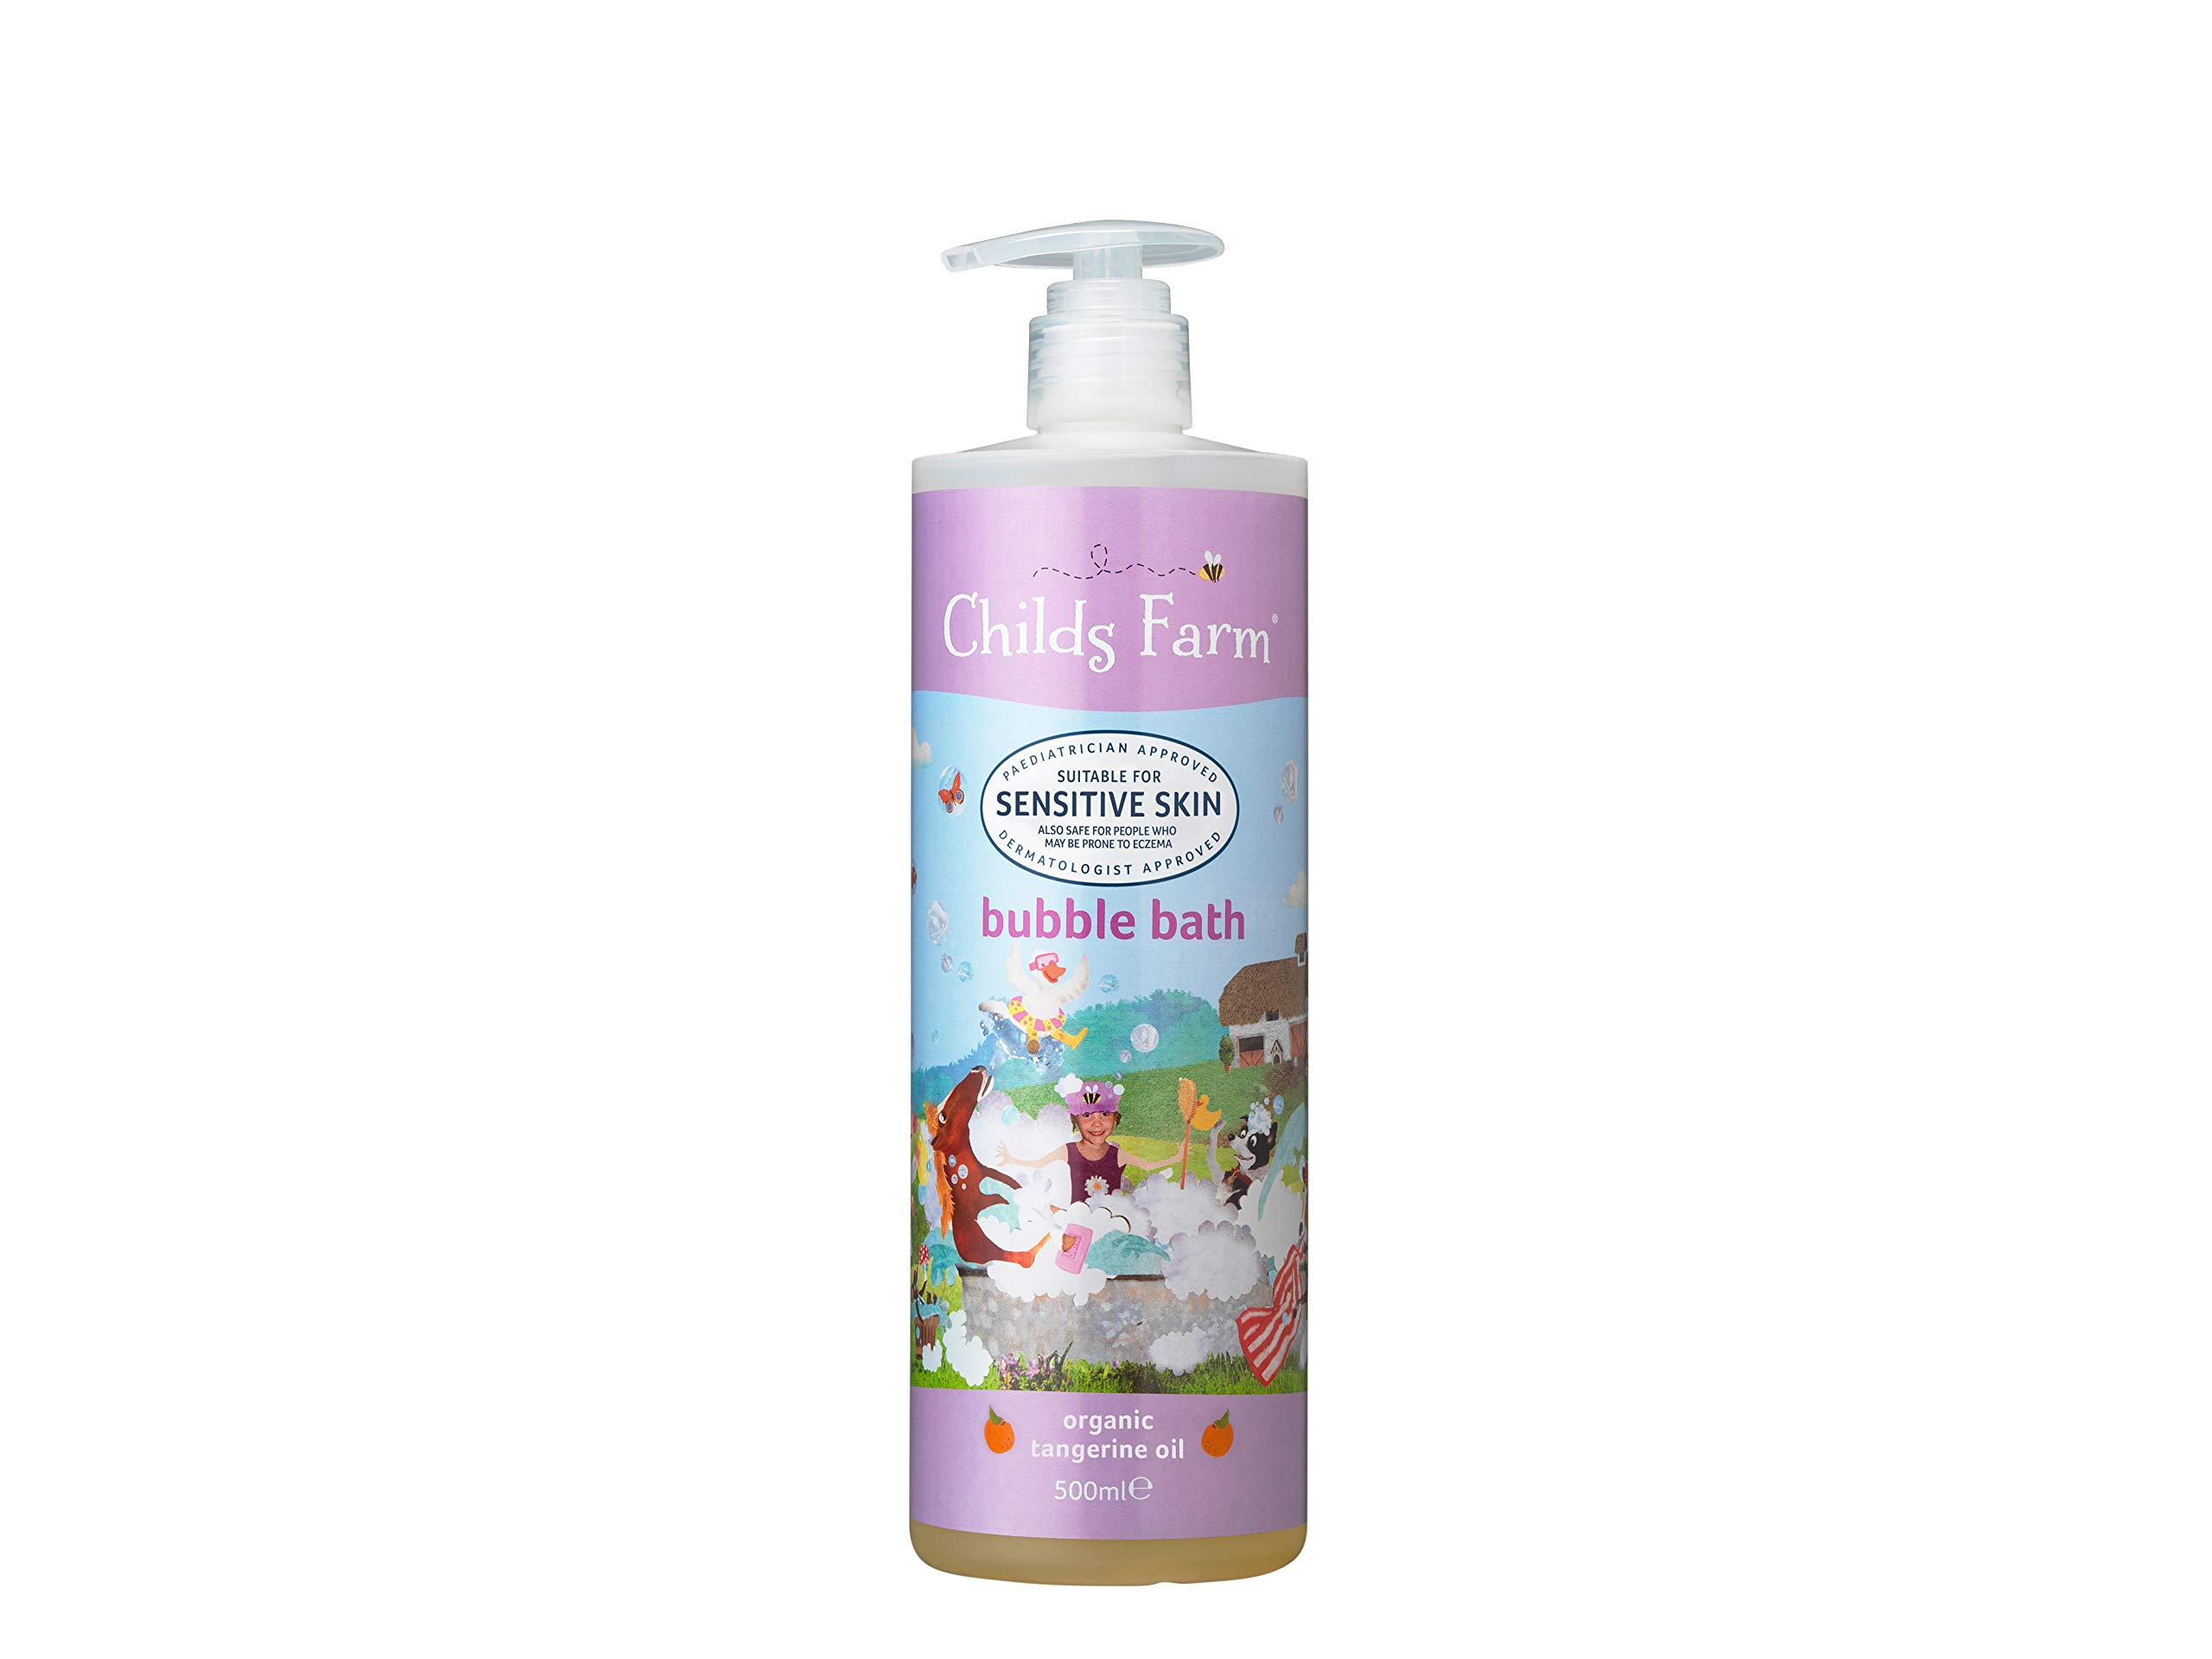 Childs Farm bubble bath organic tangerine 500ml